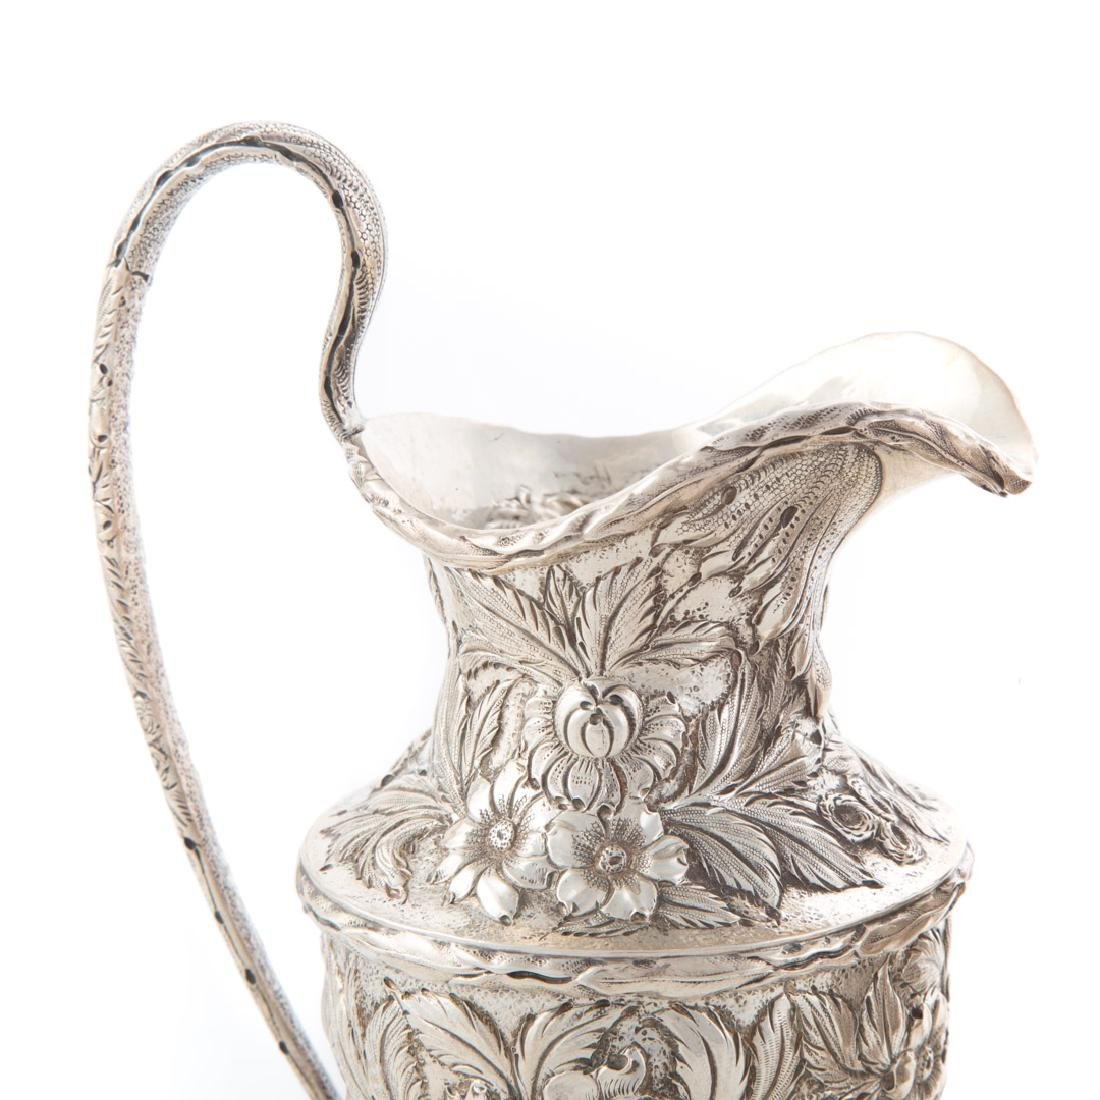 Kirk repousse sterling silver tea service - 8